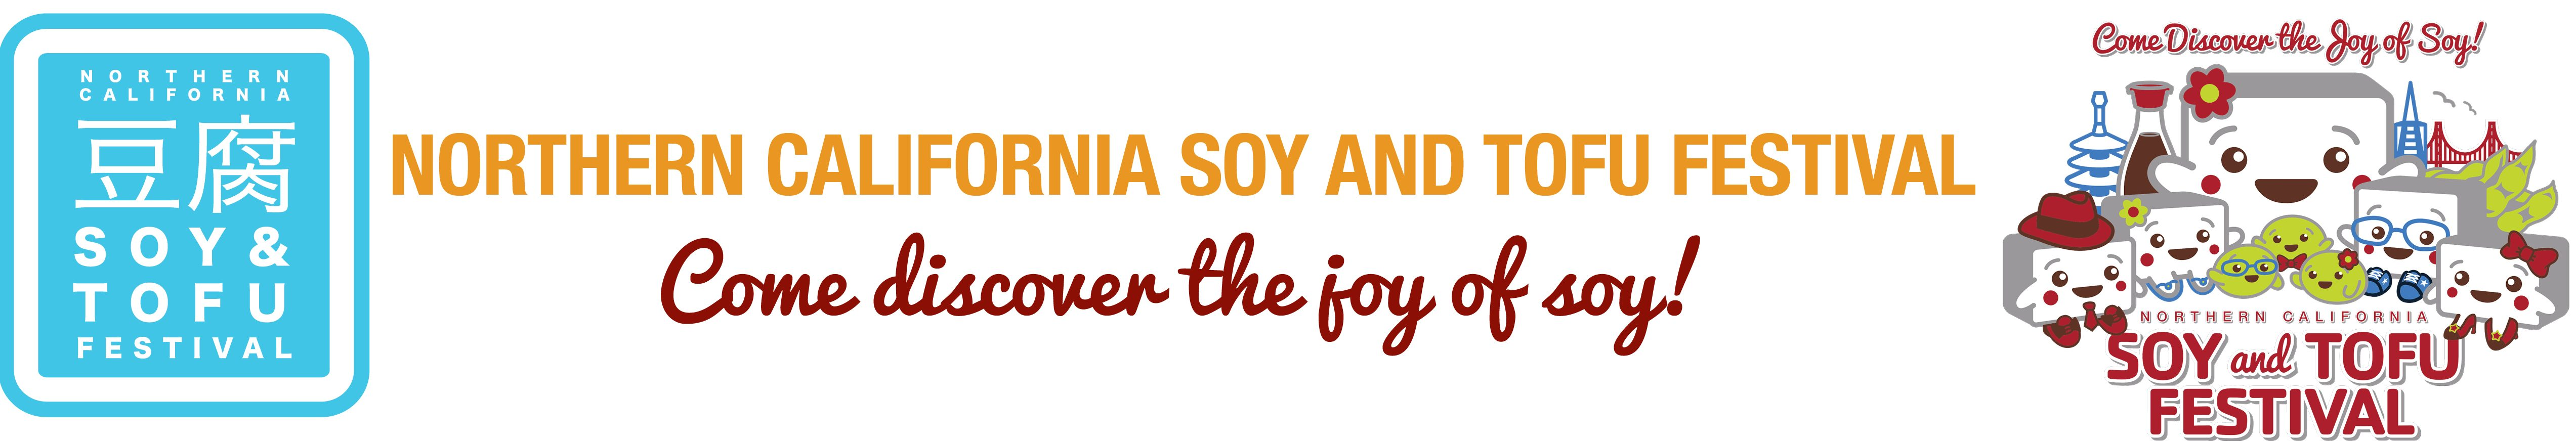 Northern California Soy and Tofu Festival